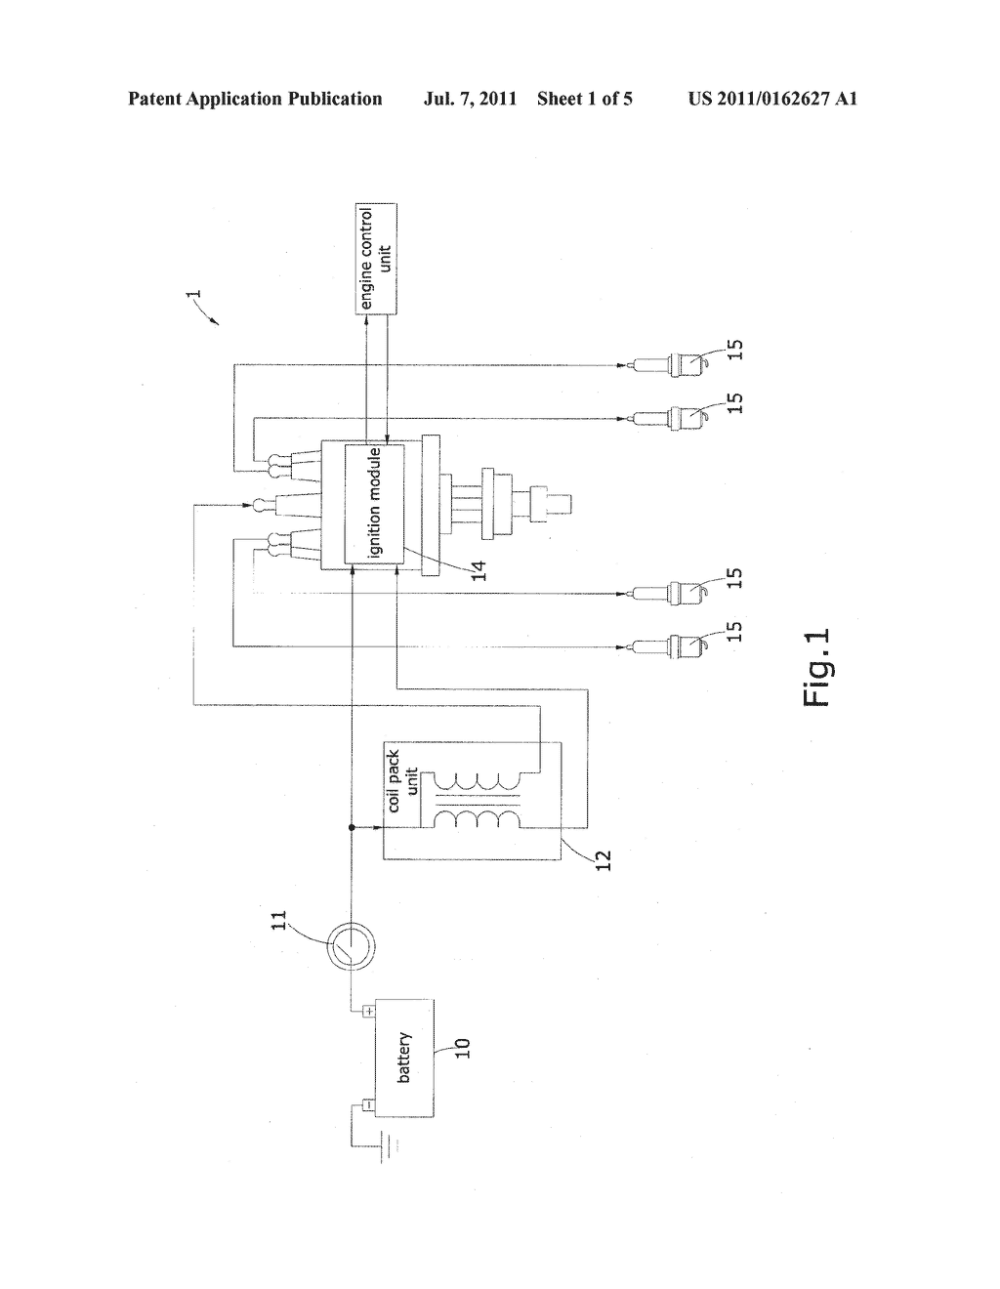 medium resolution of mixed electronic ignition system integrated with a distributor structure and an engine control unit diagram schematic and image 02